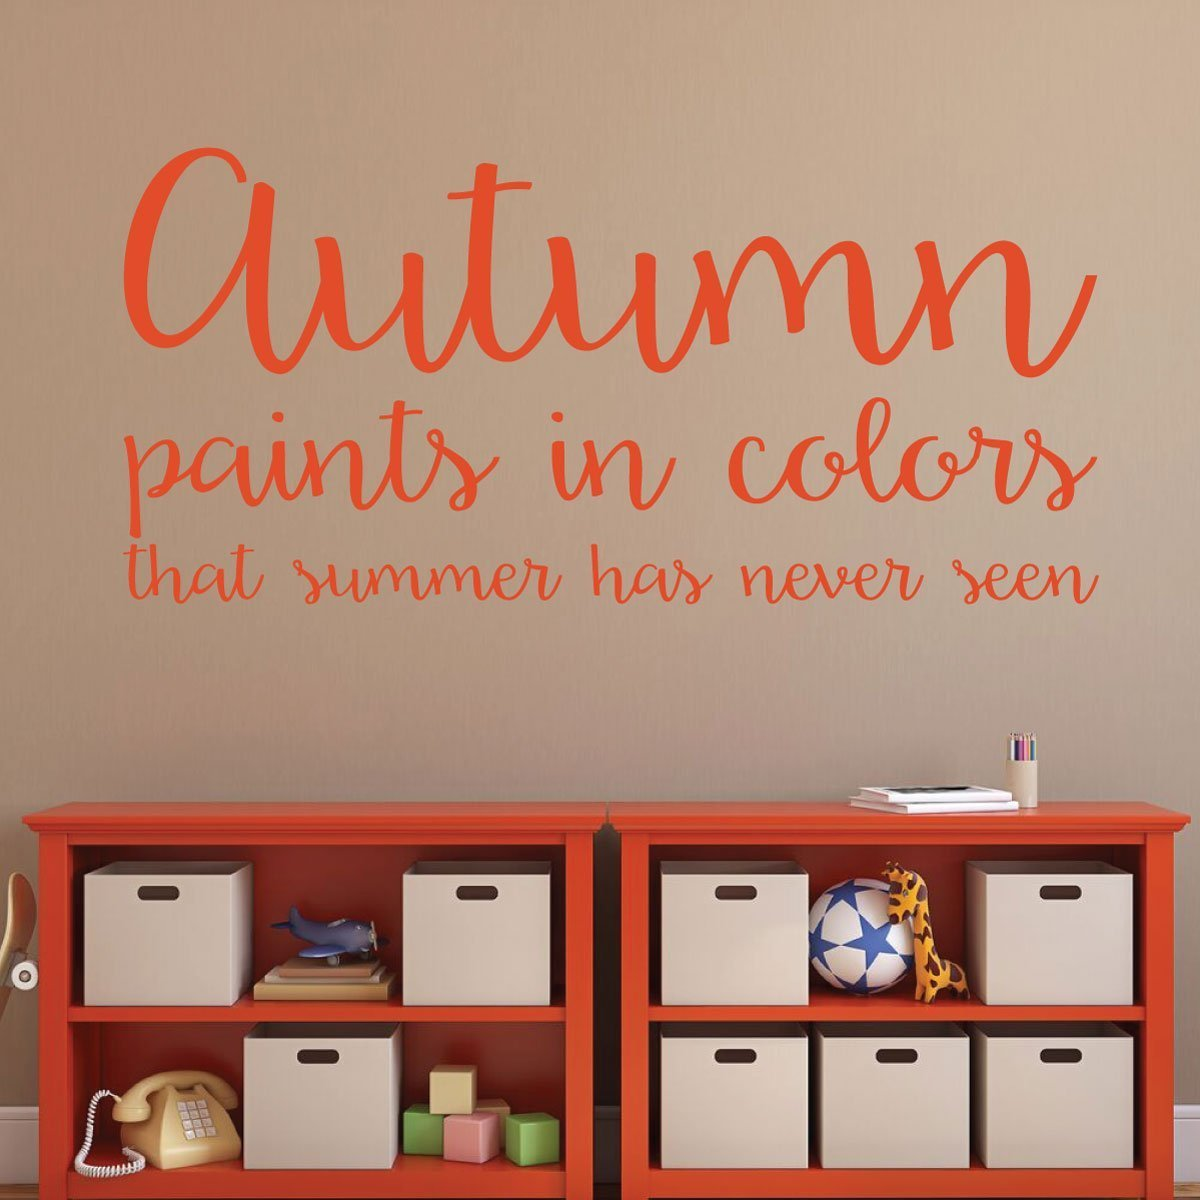 Autumn Decorations - Autumn Paints in Colors that Summer Has Never Seen - Fall Vinyl Word Art